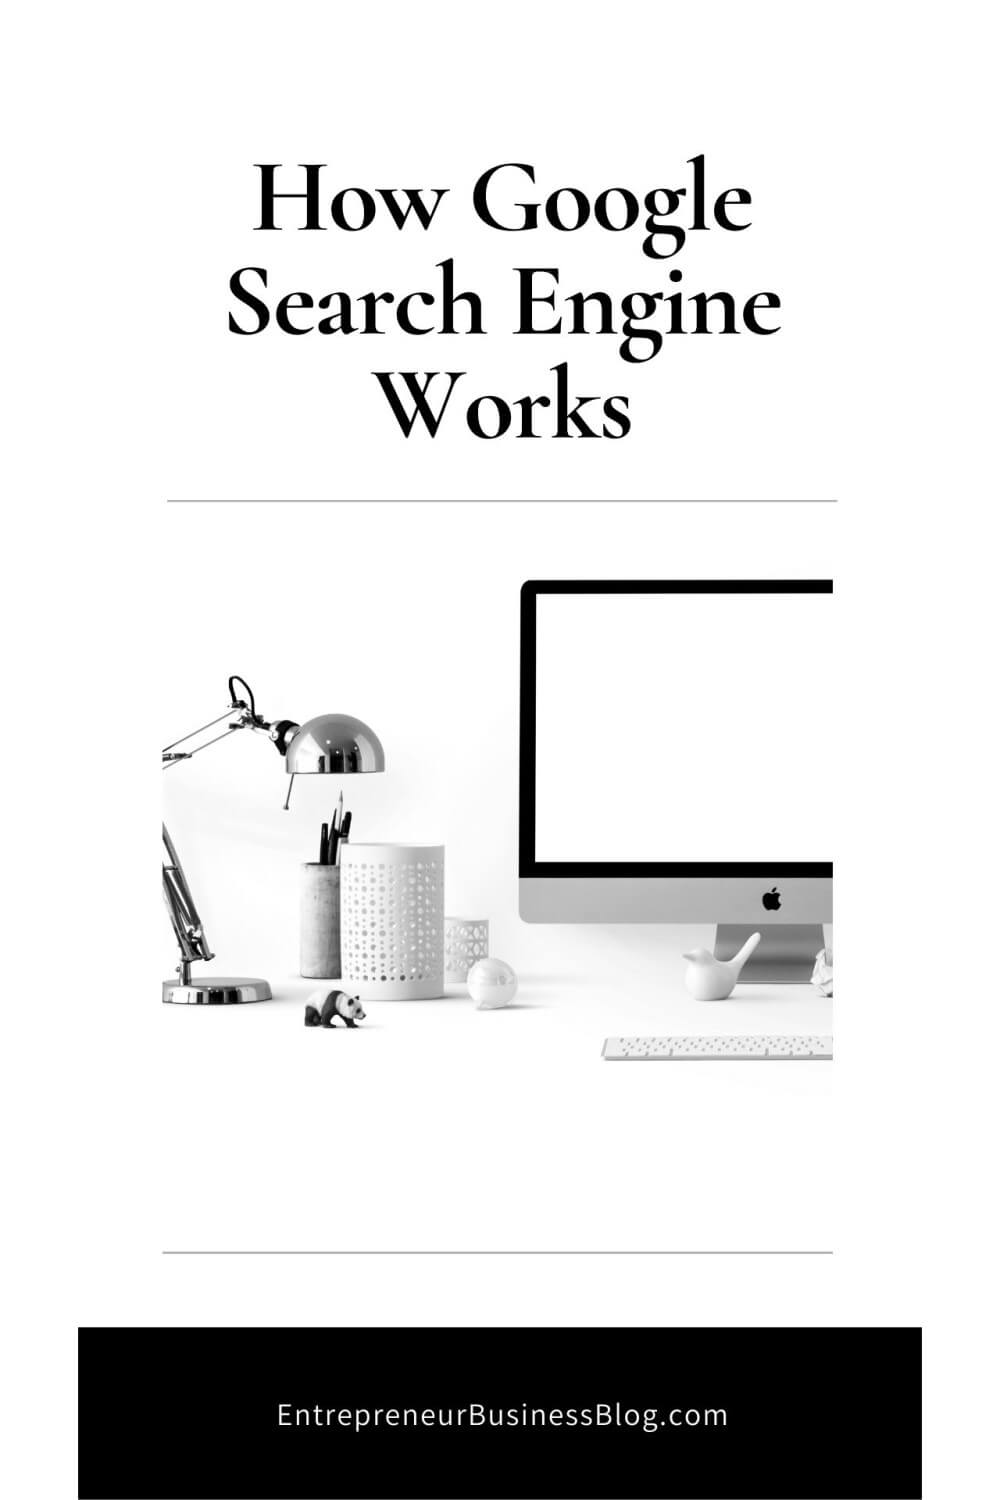 How Google Search Engine Works